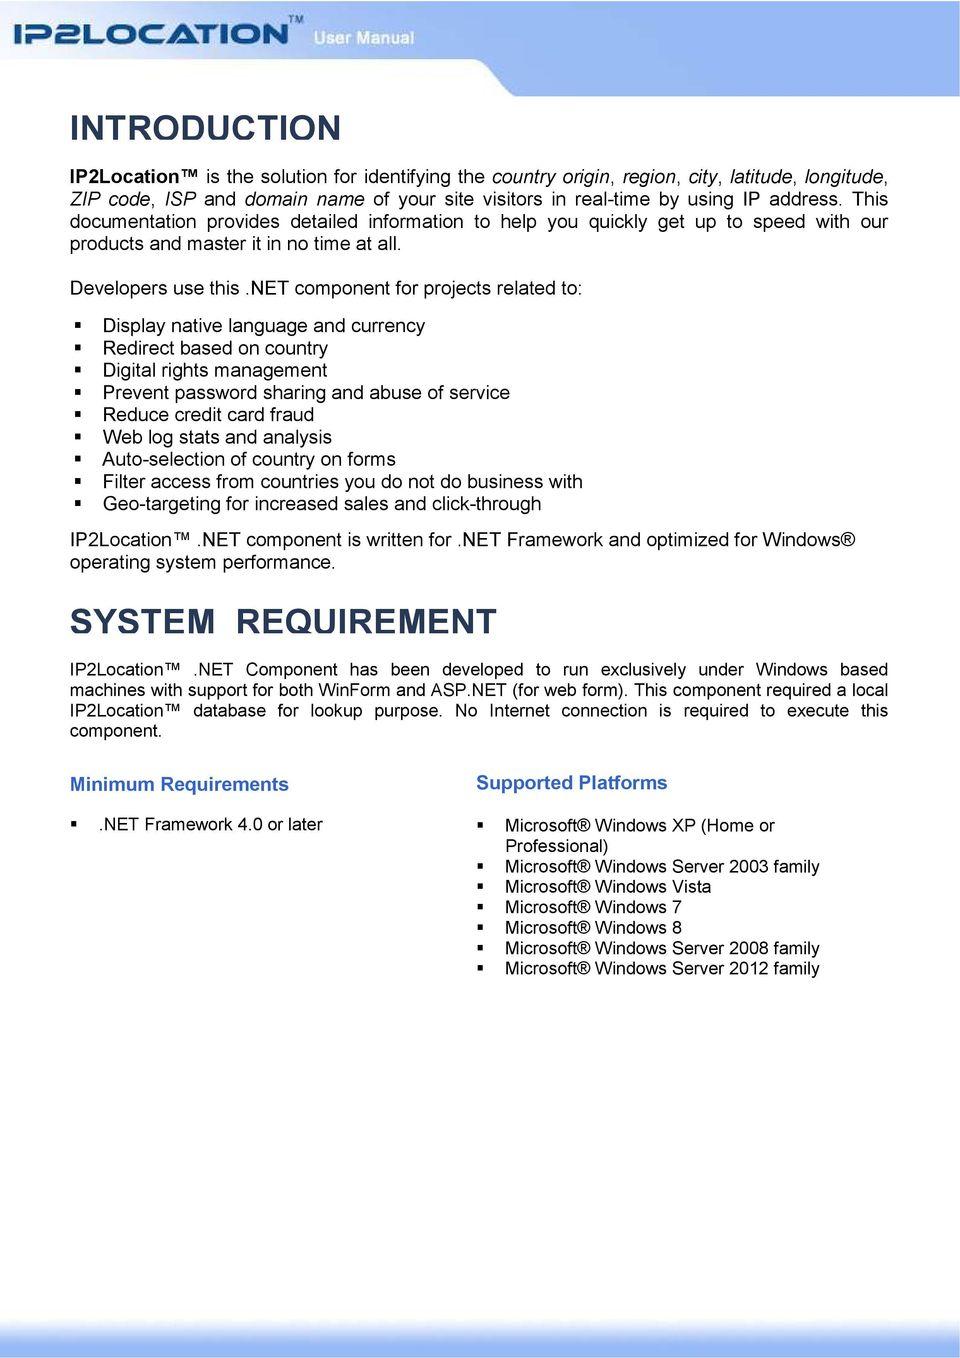 INTRODUCTION SYSTEM REQUIREMENT - PDF